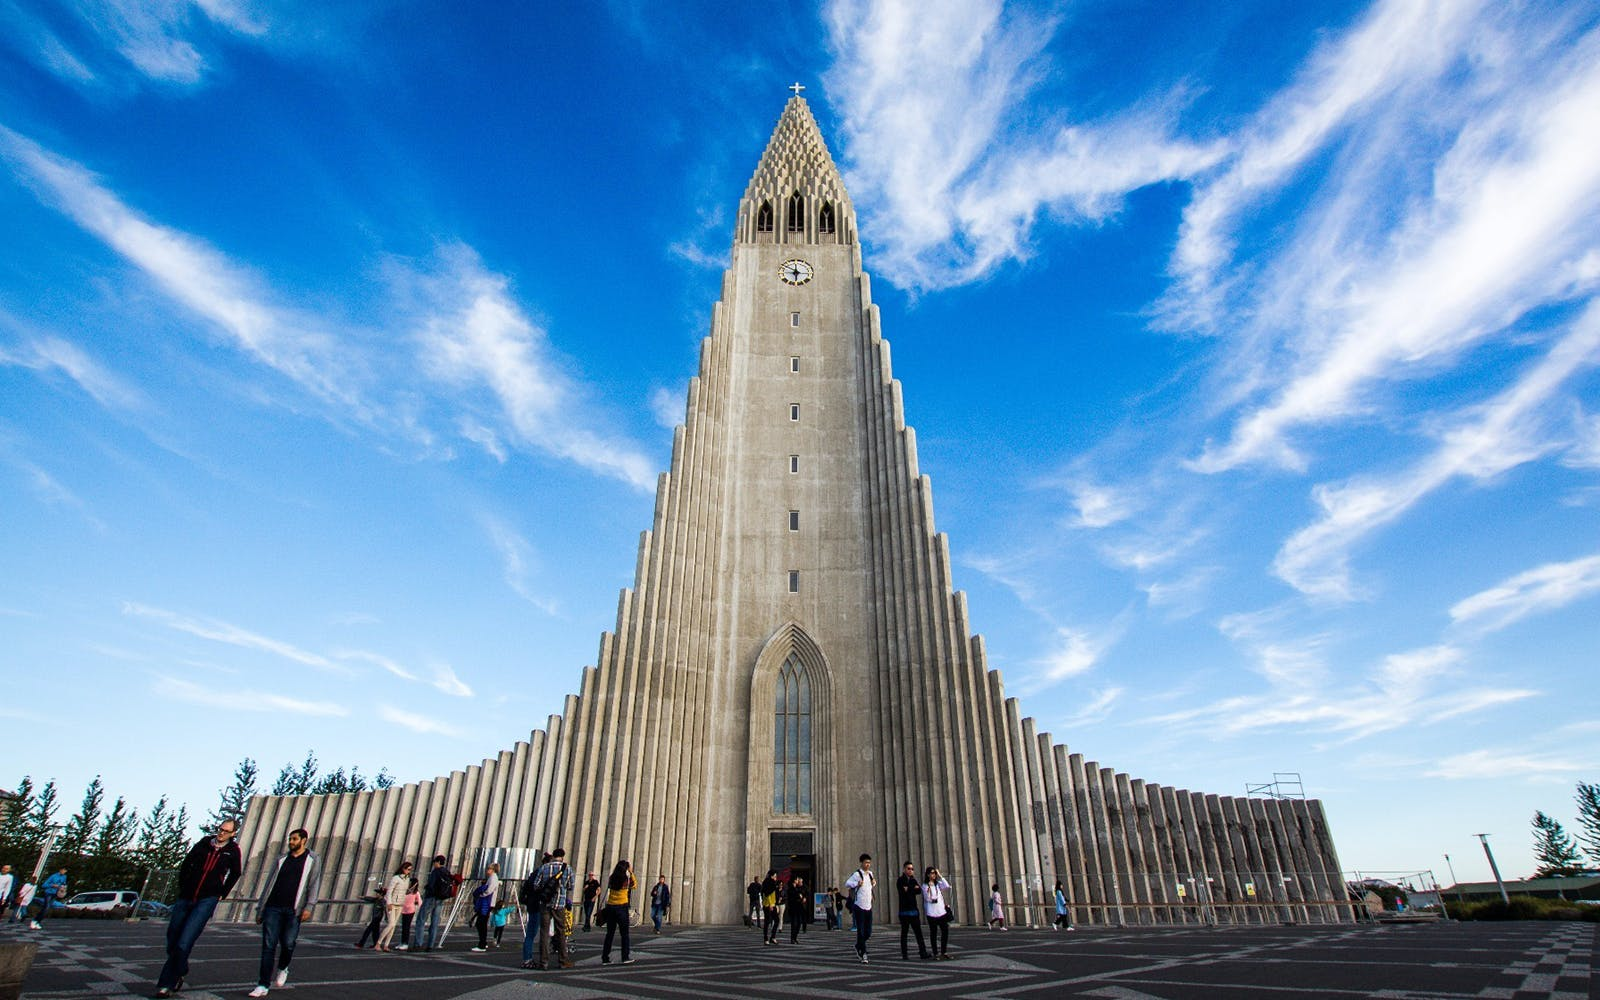 Full Day Tour of Reykjavik City and Golden Circle